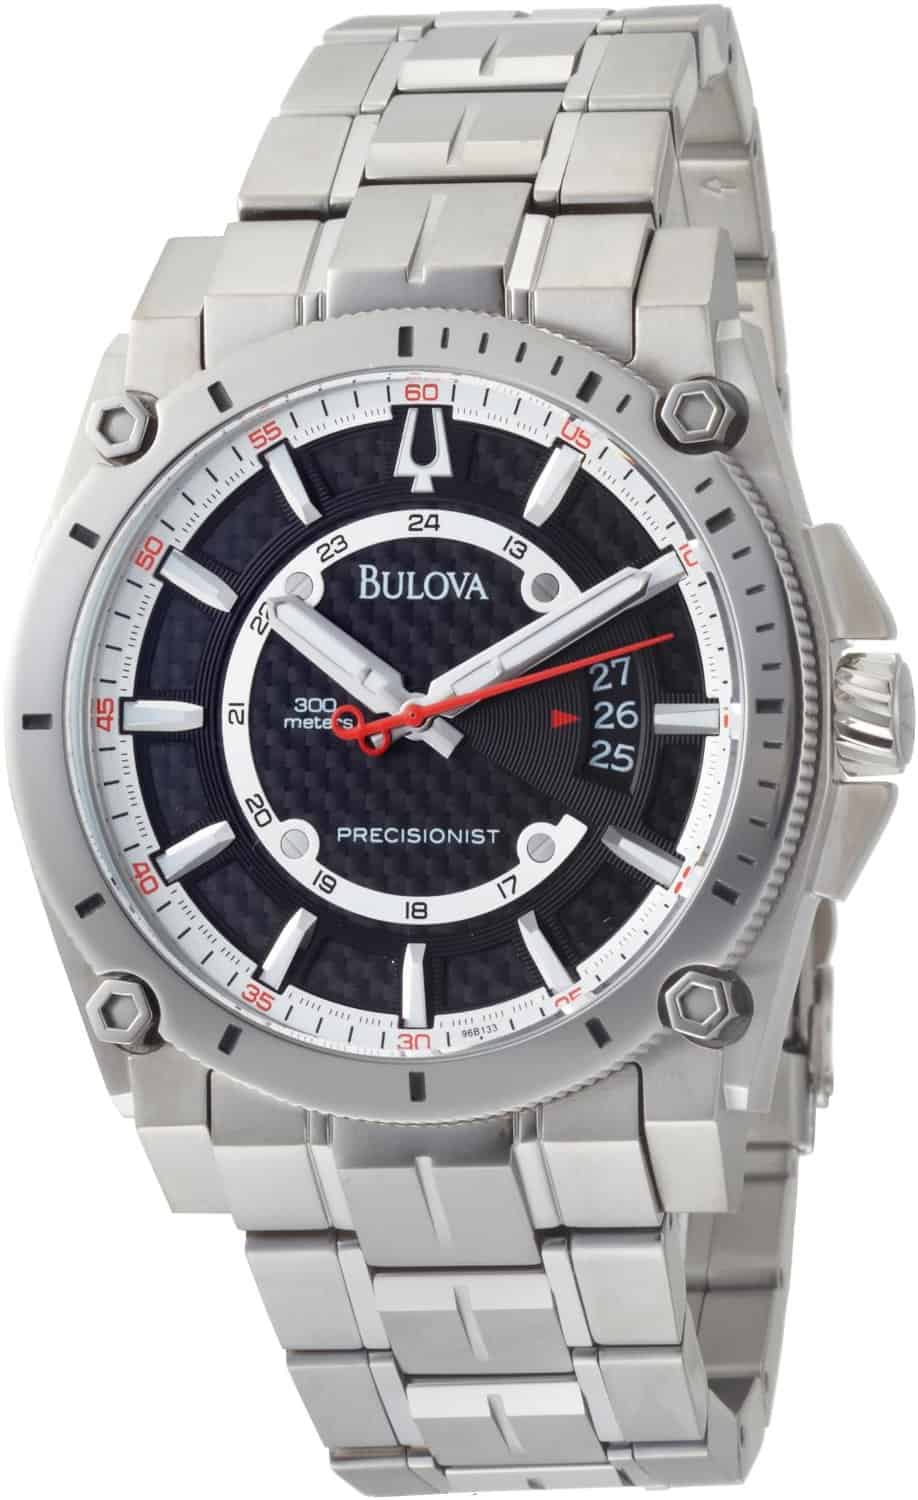 World S Gold Bulova Watch